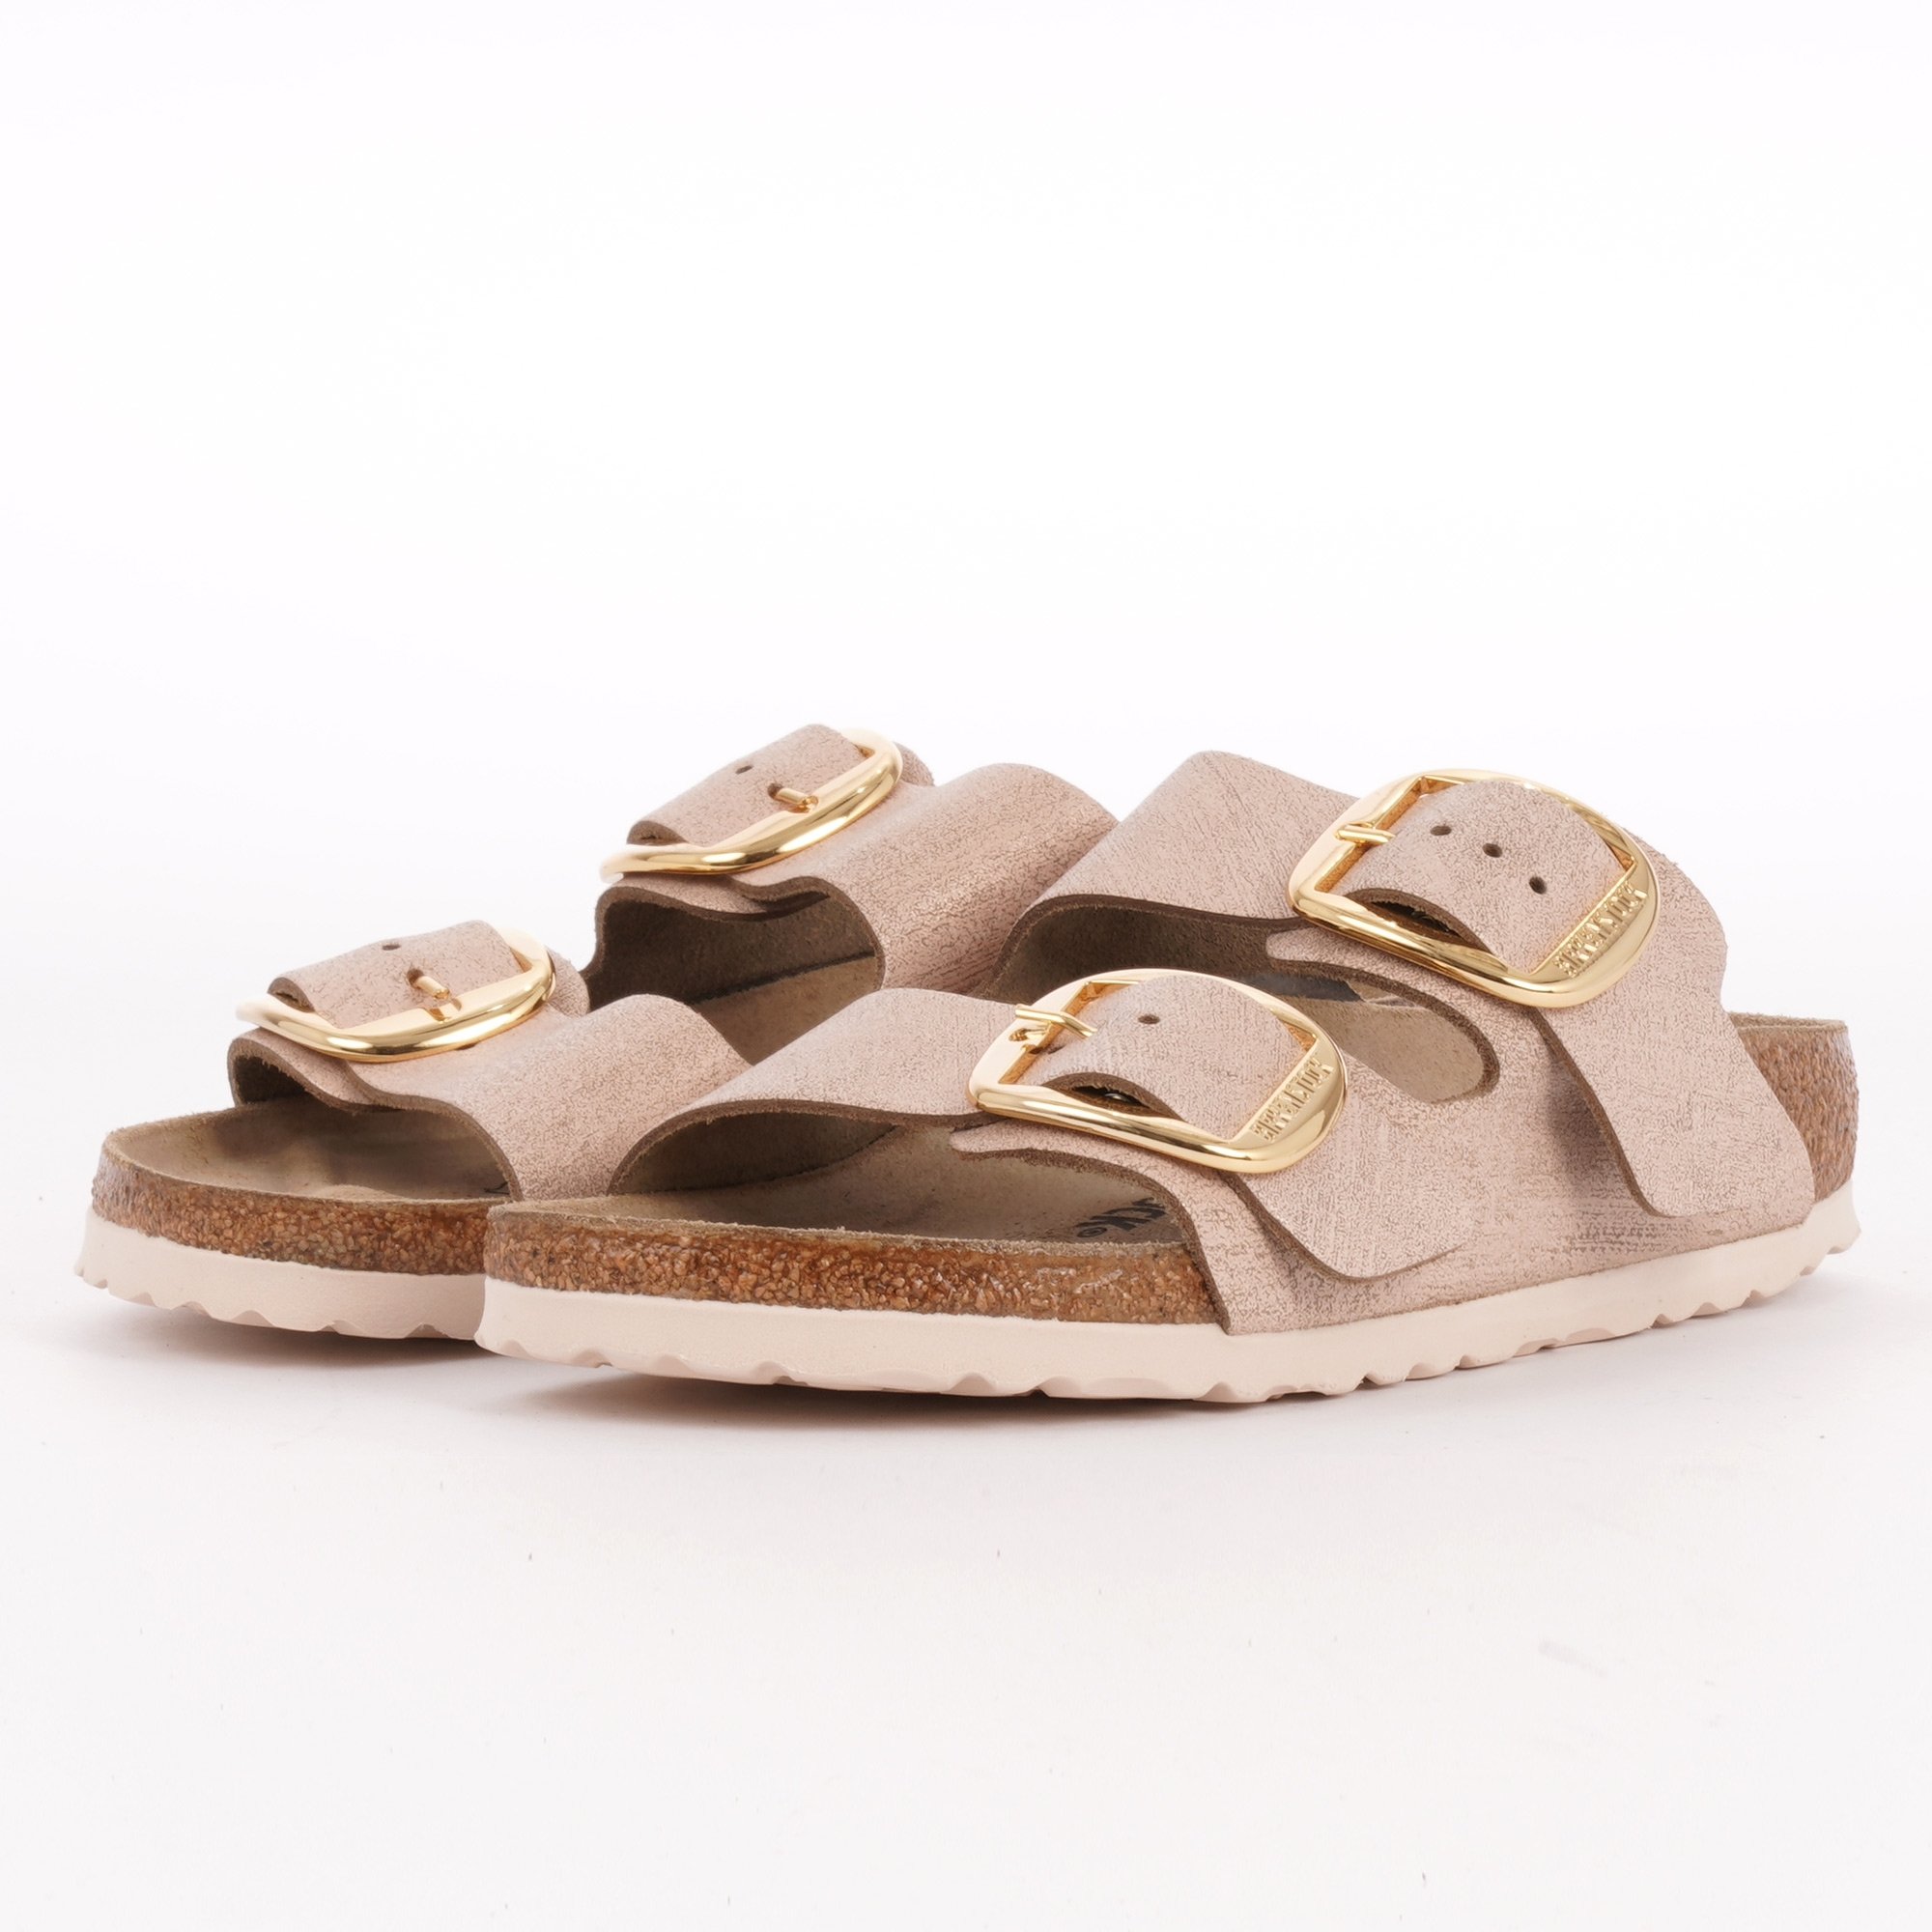 d7b521532211 Birkenstock Womens Arizona Big Buckle Sandals - Washed Metallic Rose Gold